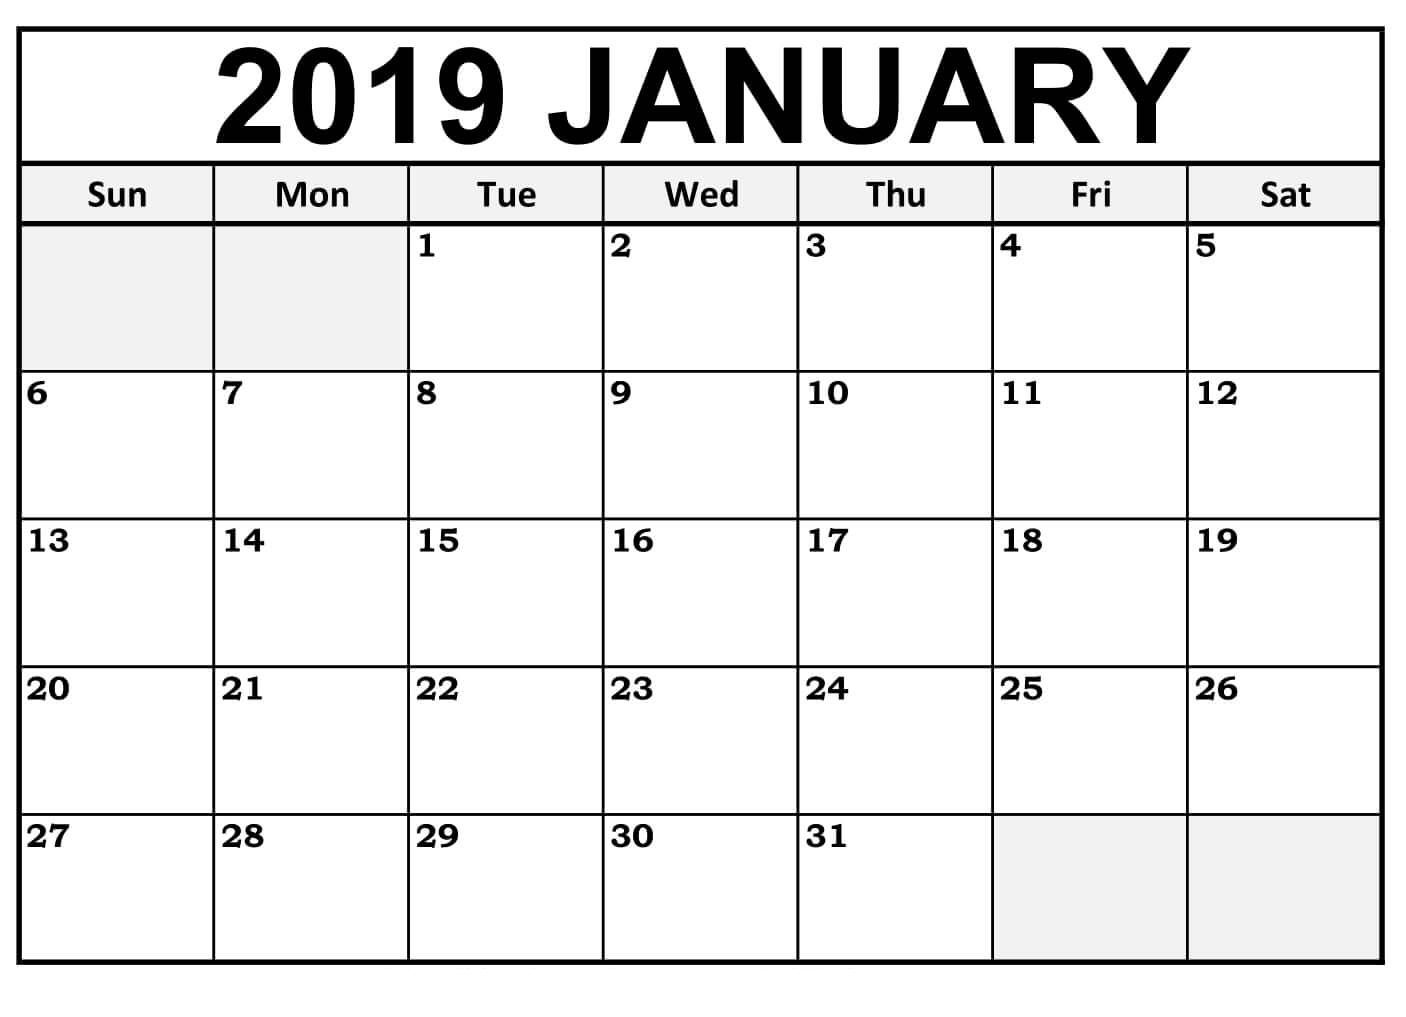 January Calendar 2019 Template Free Download Calendar Printables